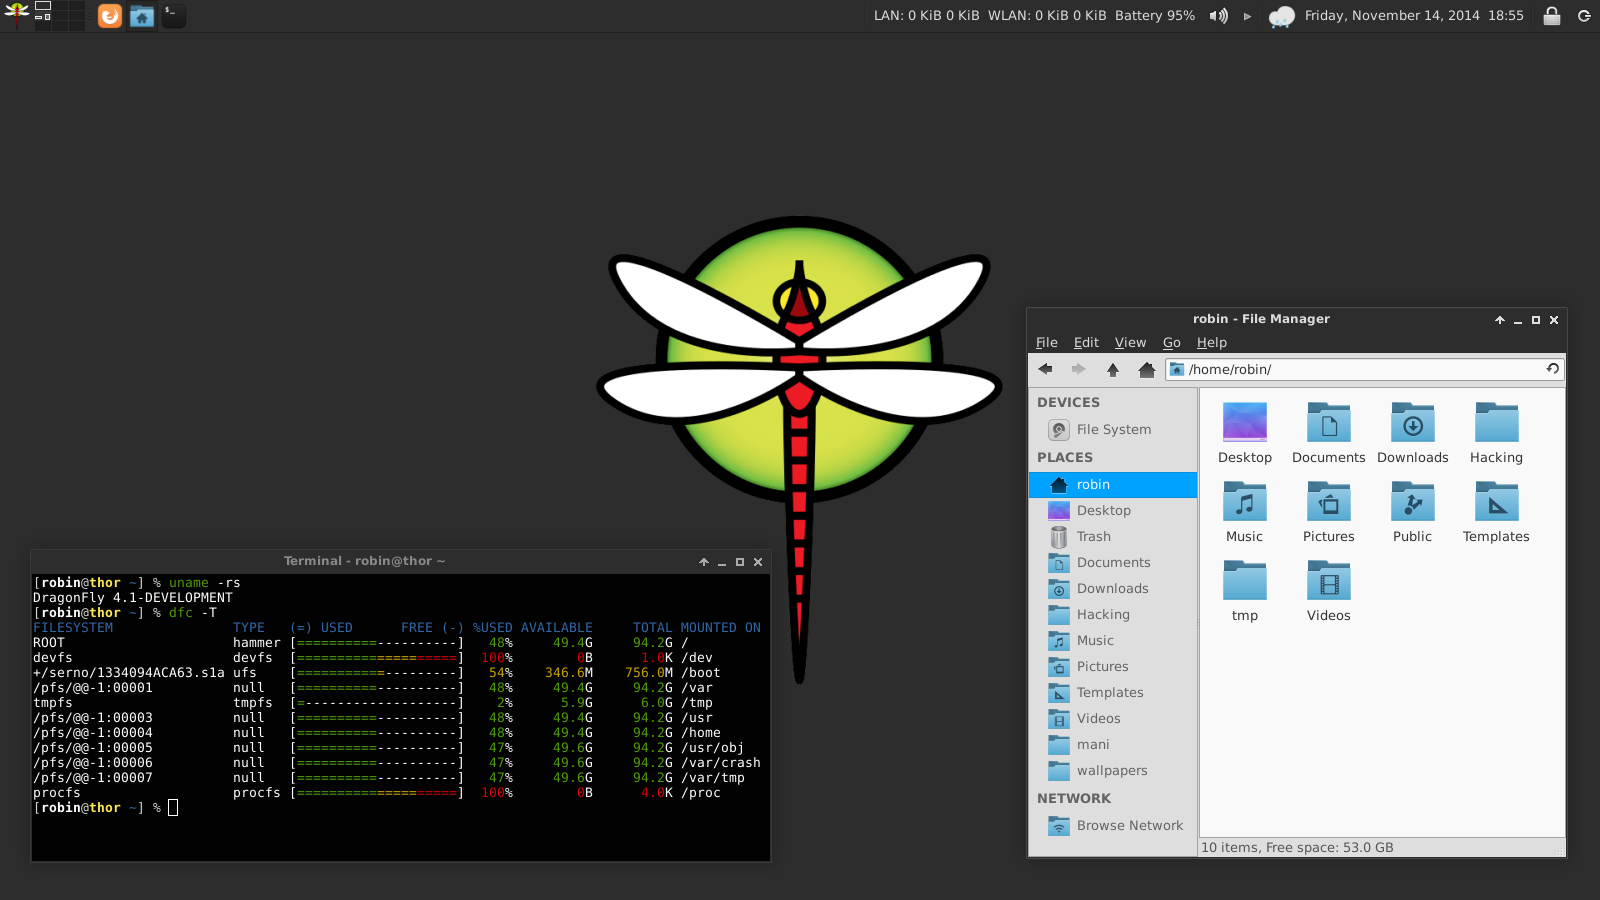 dragonflybsd.png